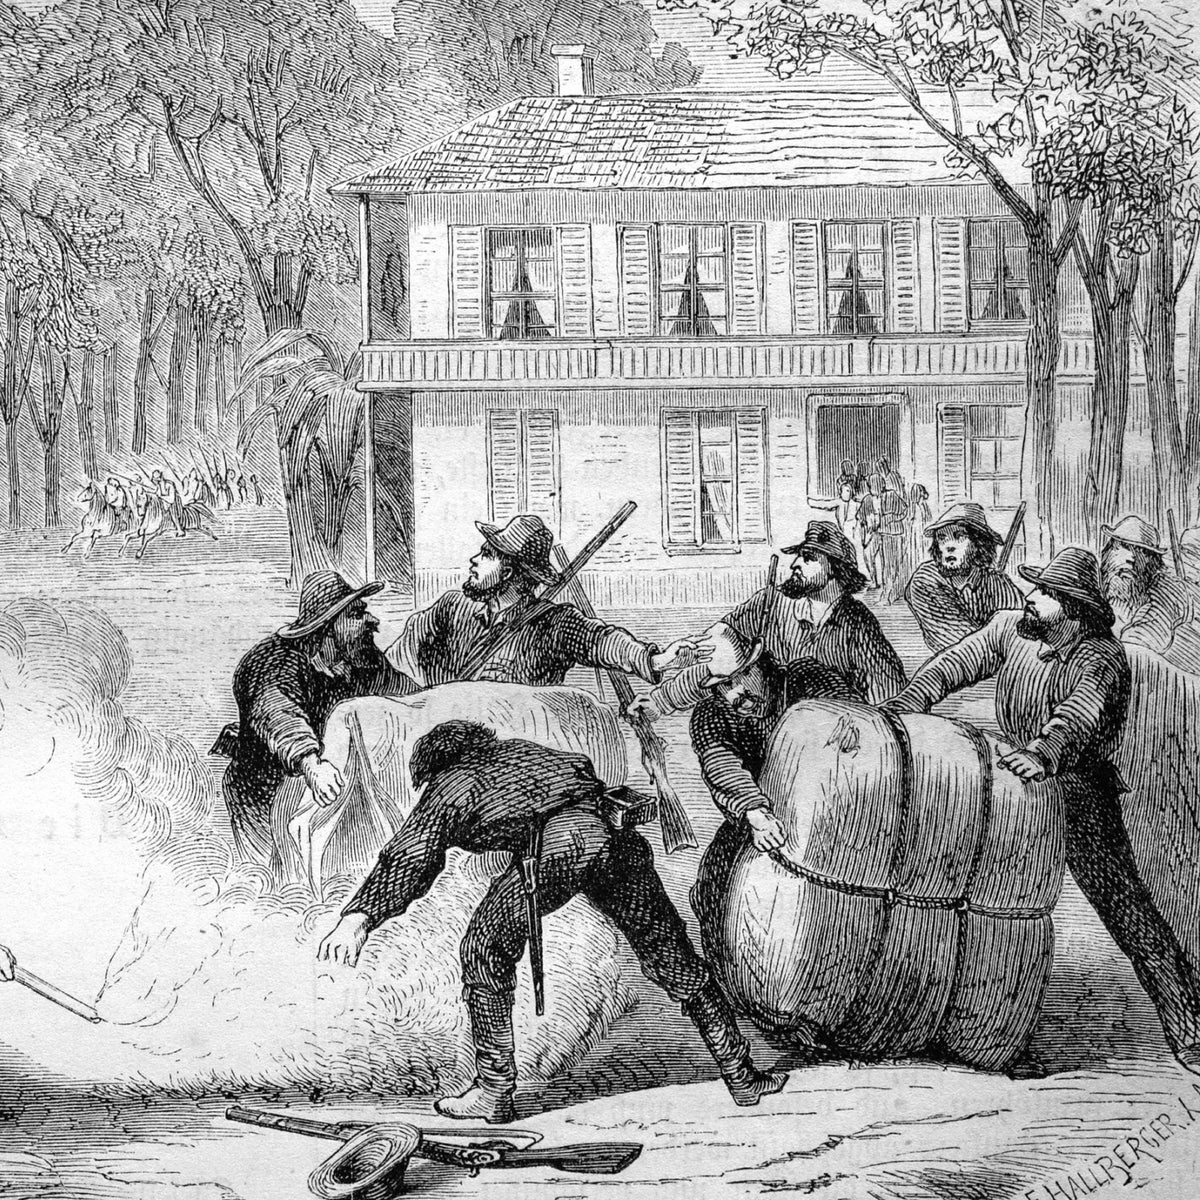 Confederate soldiers burning cotton in 1888.